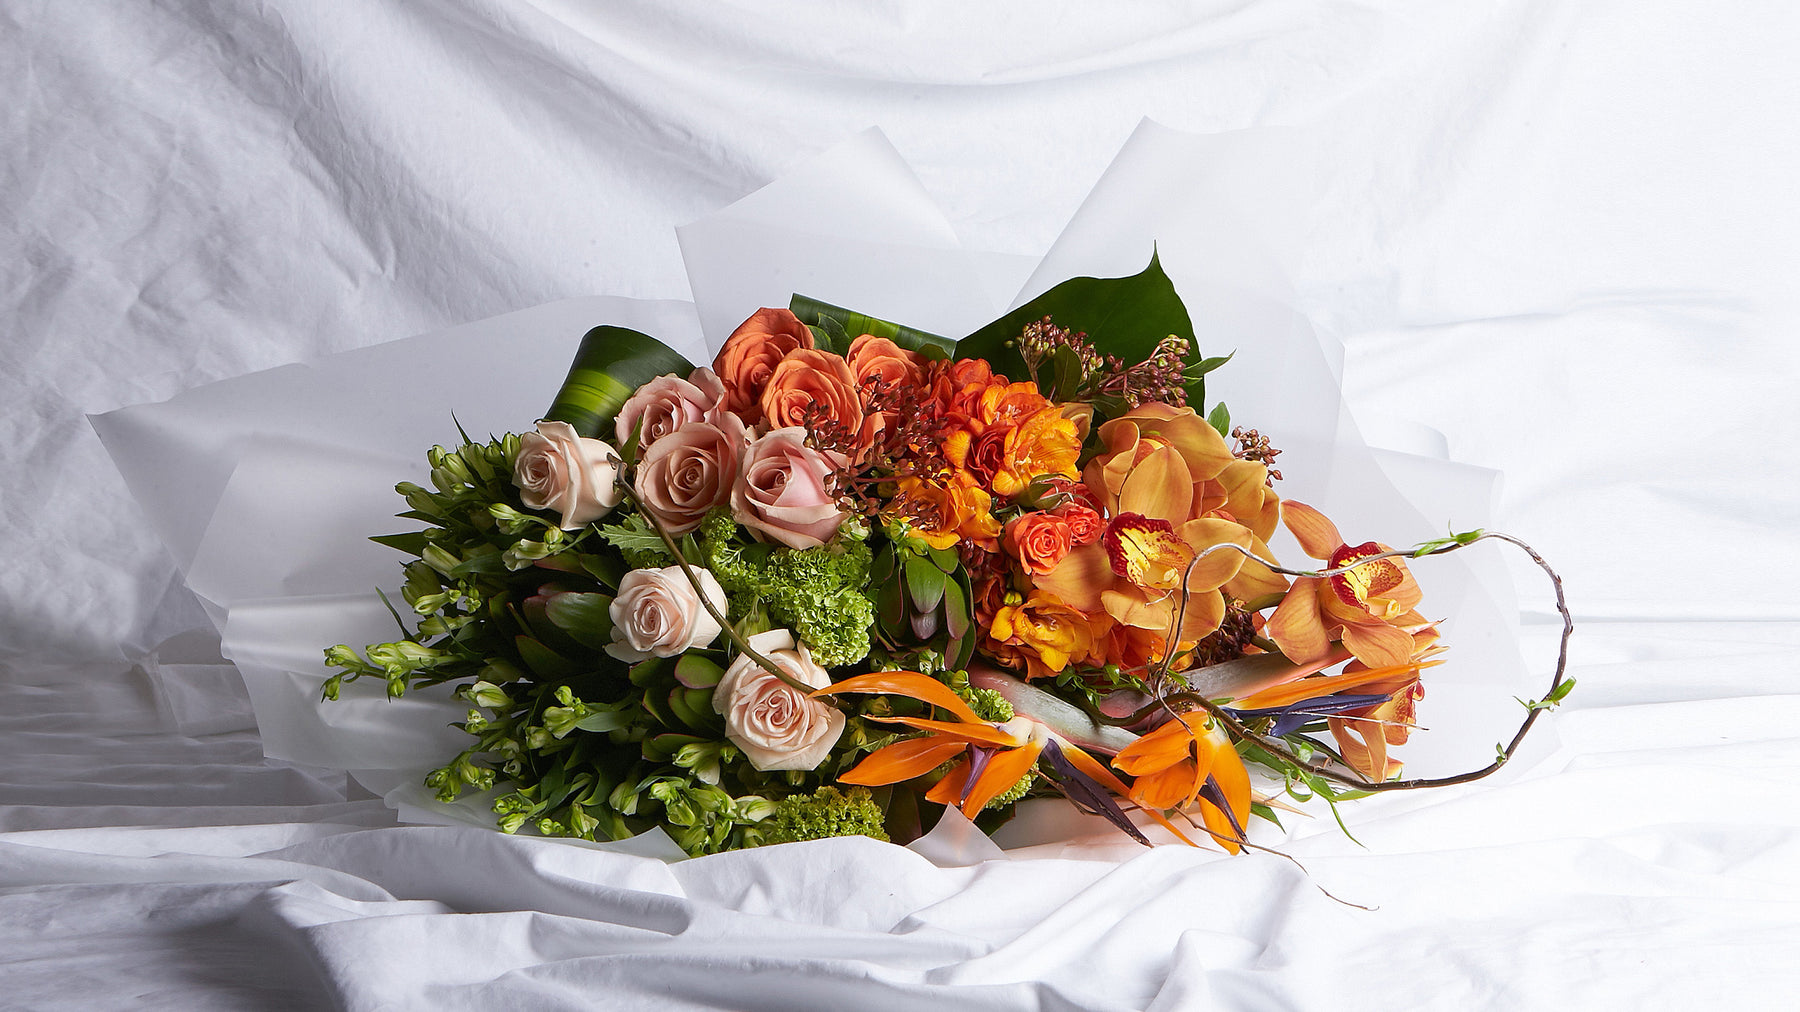 The Orange, Peach & Green Bouquet